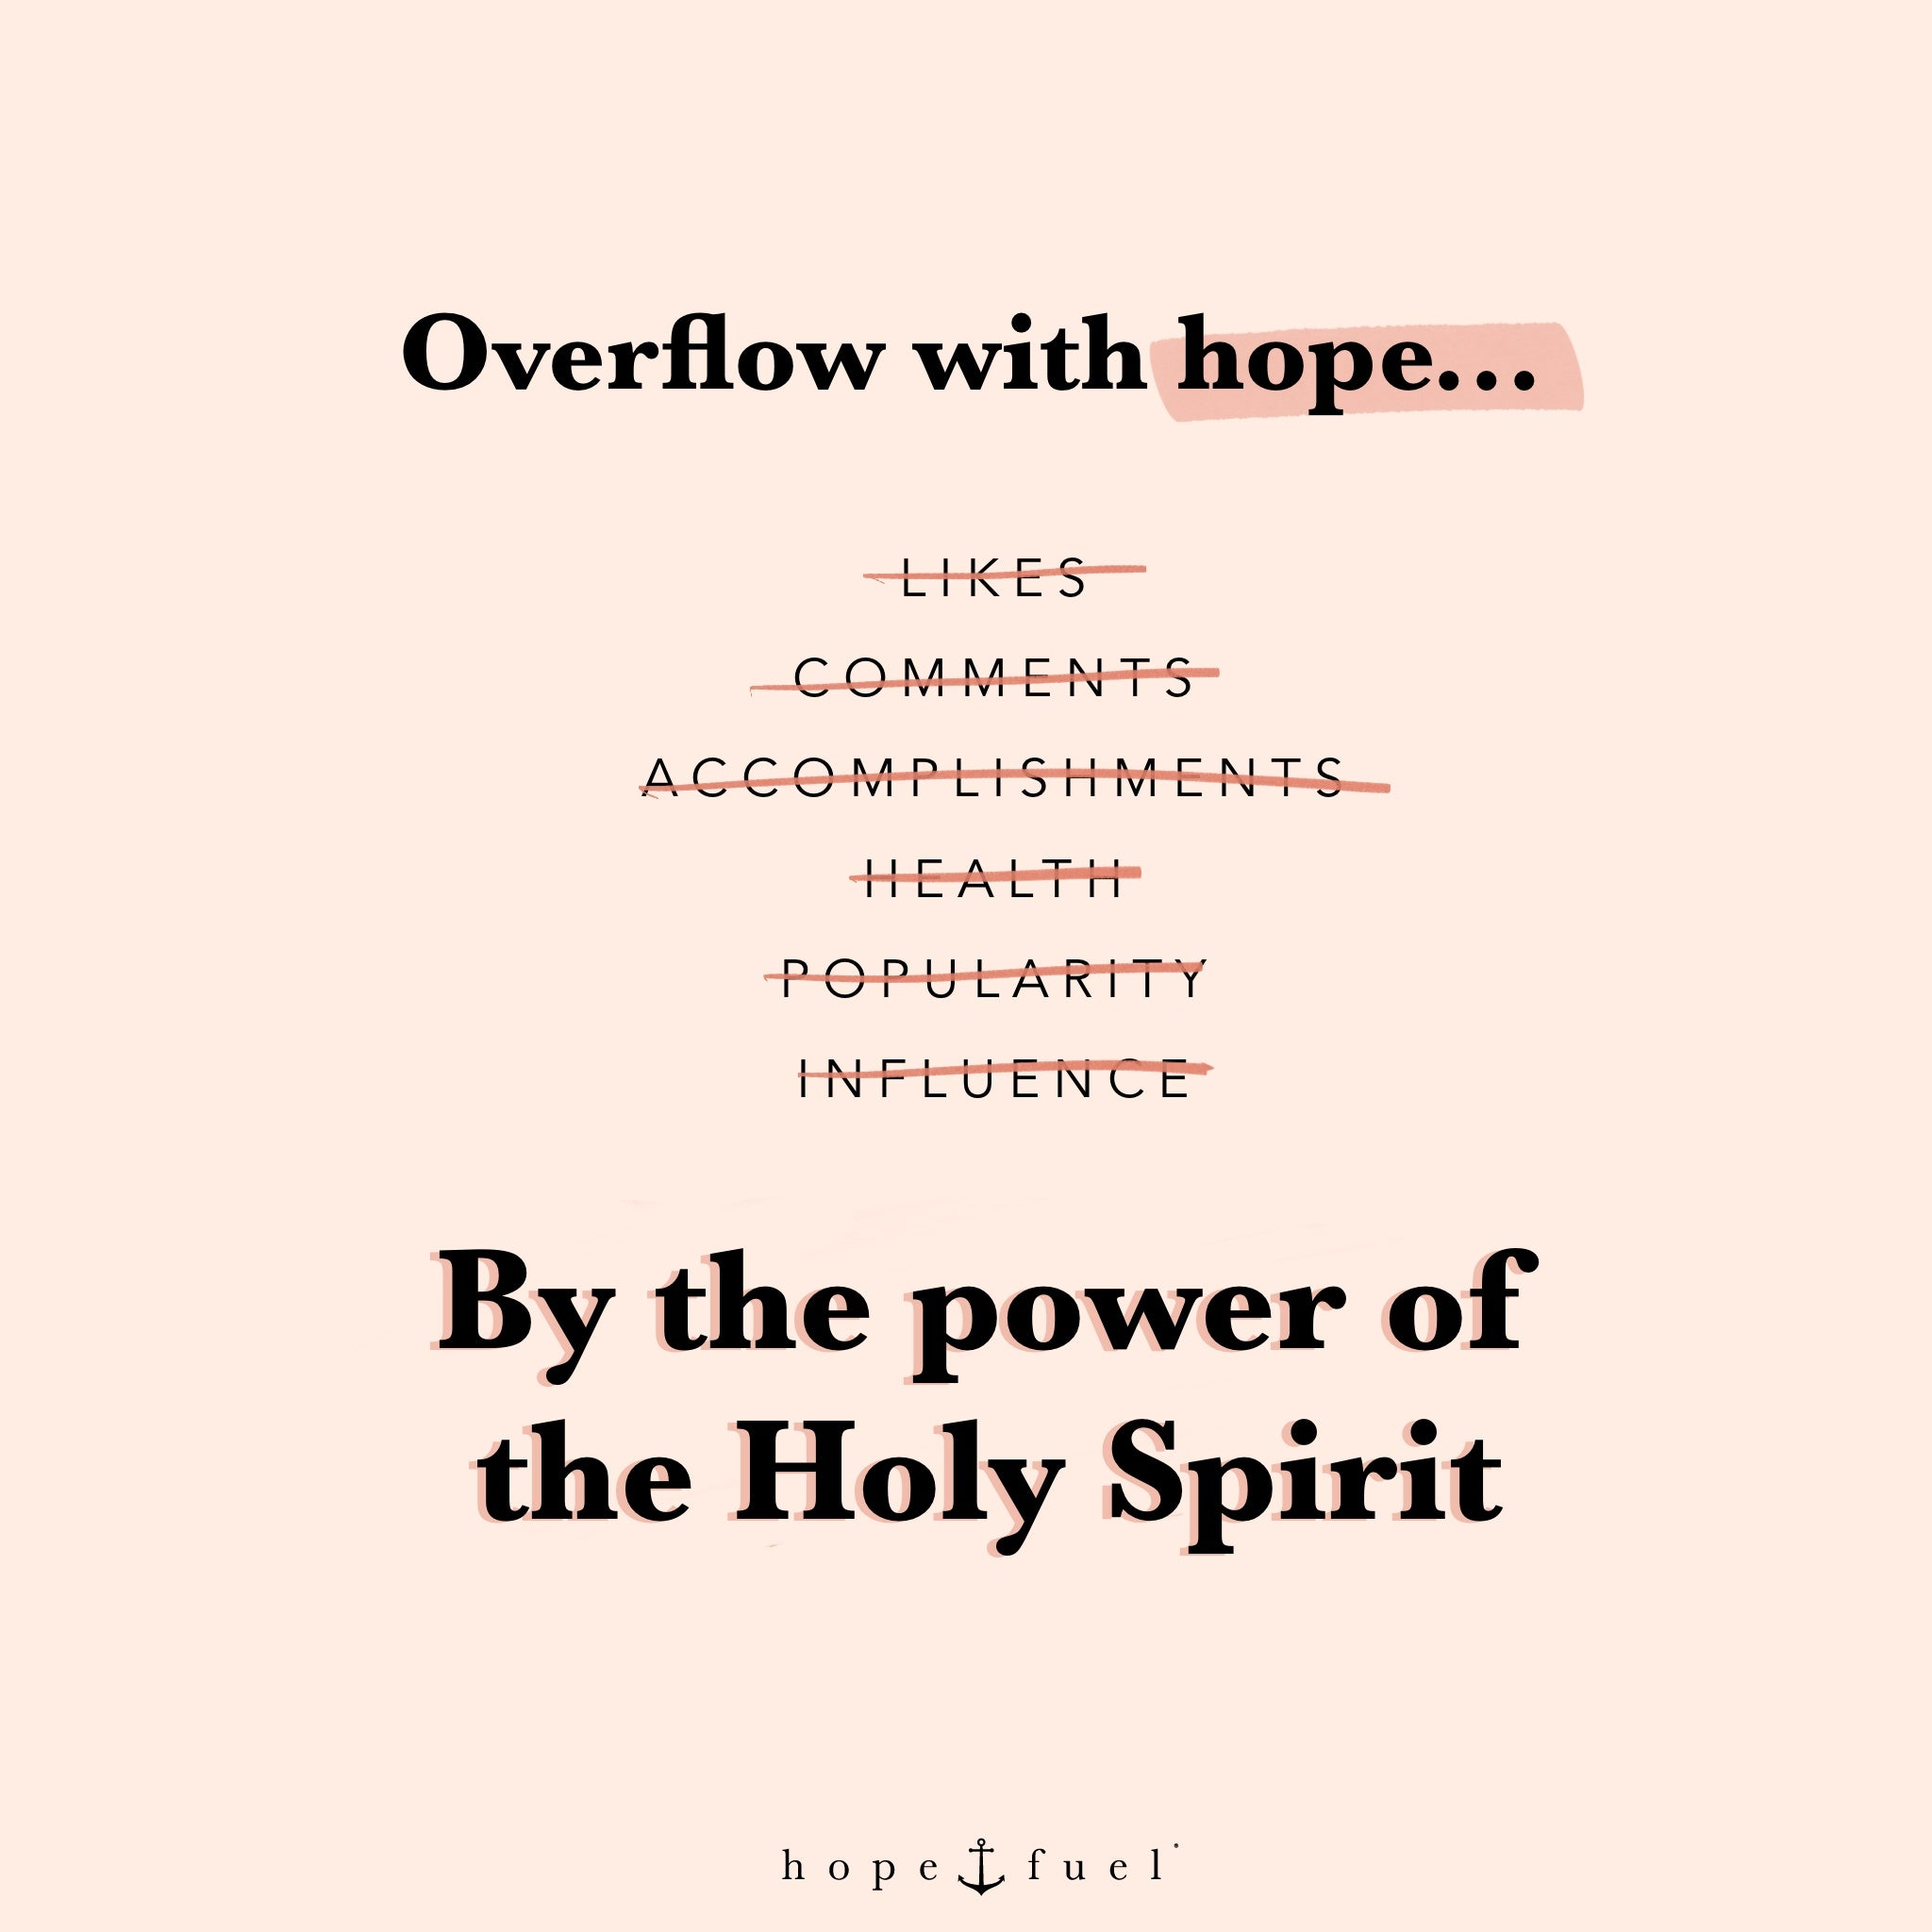 overflow with hope by the power of the holy spirit